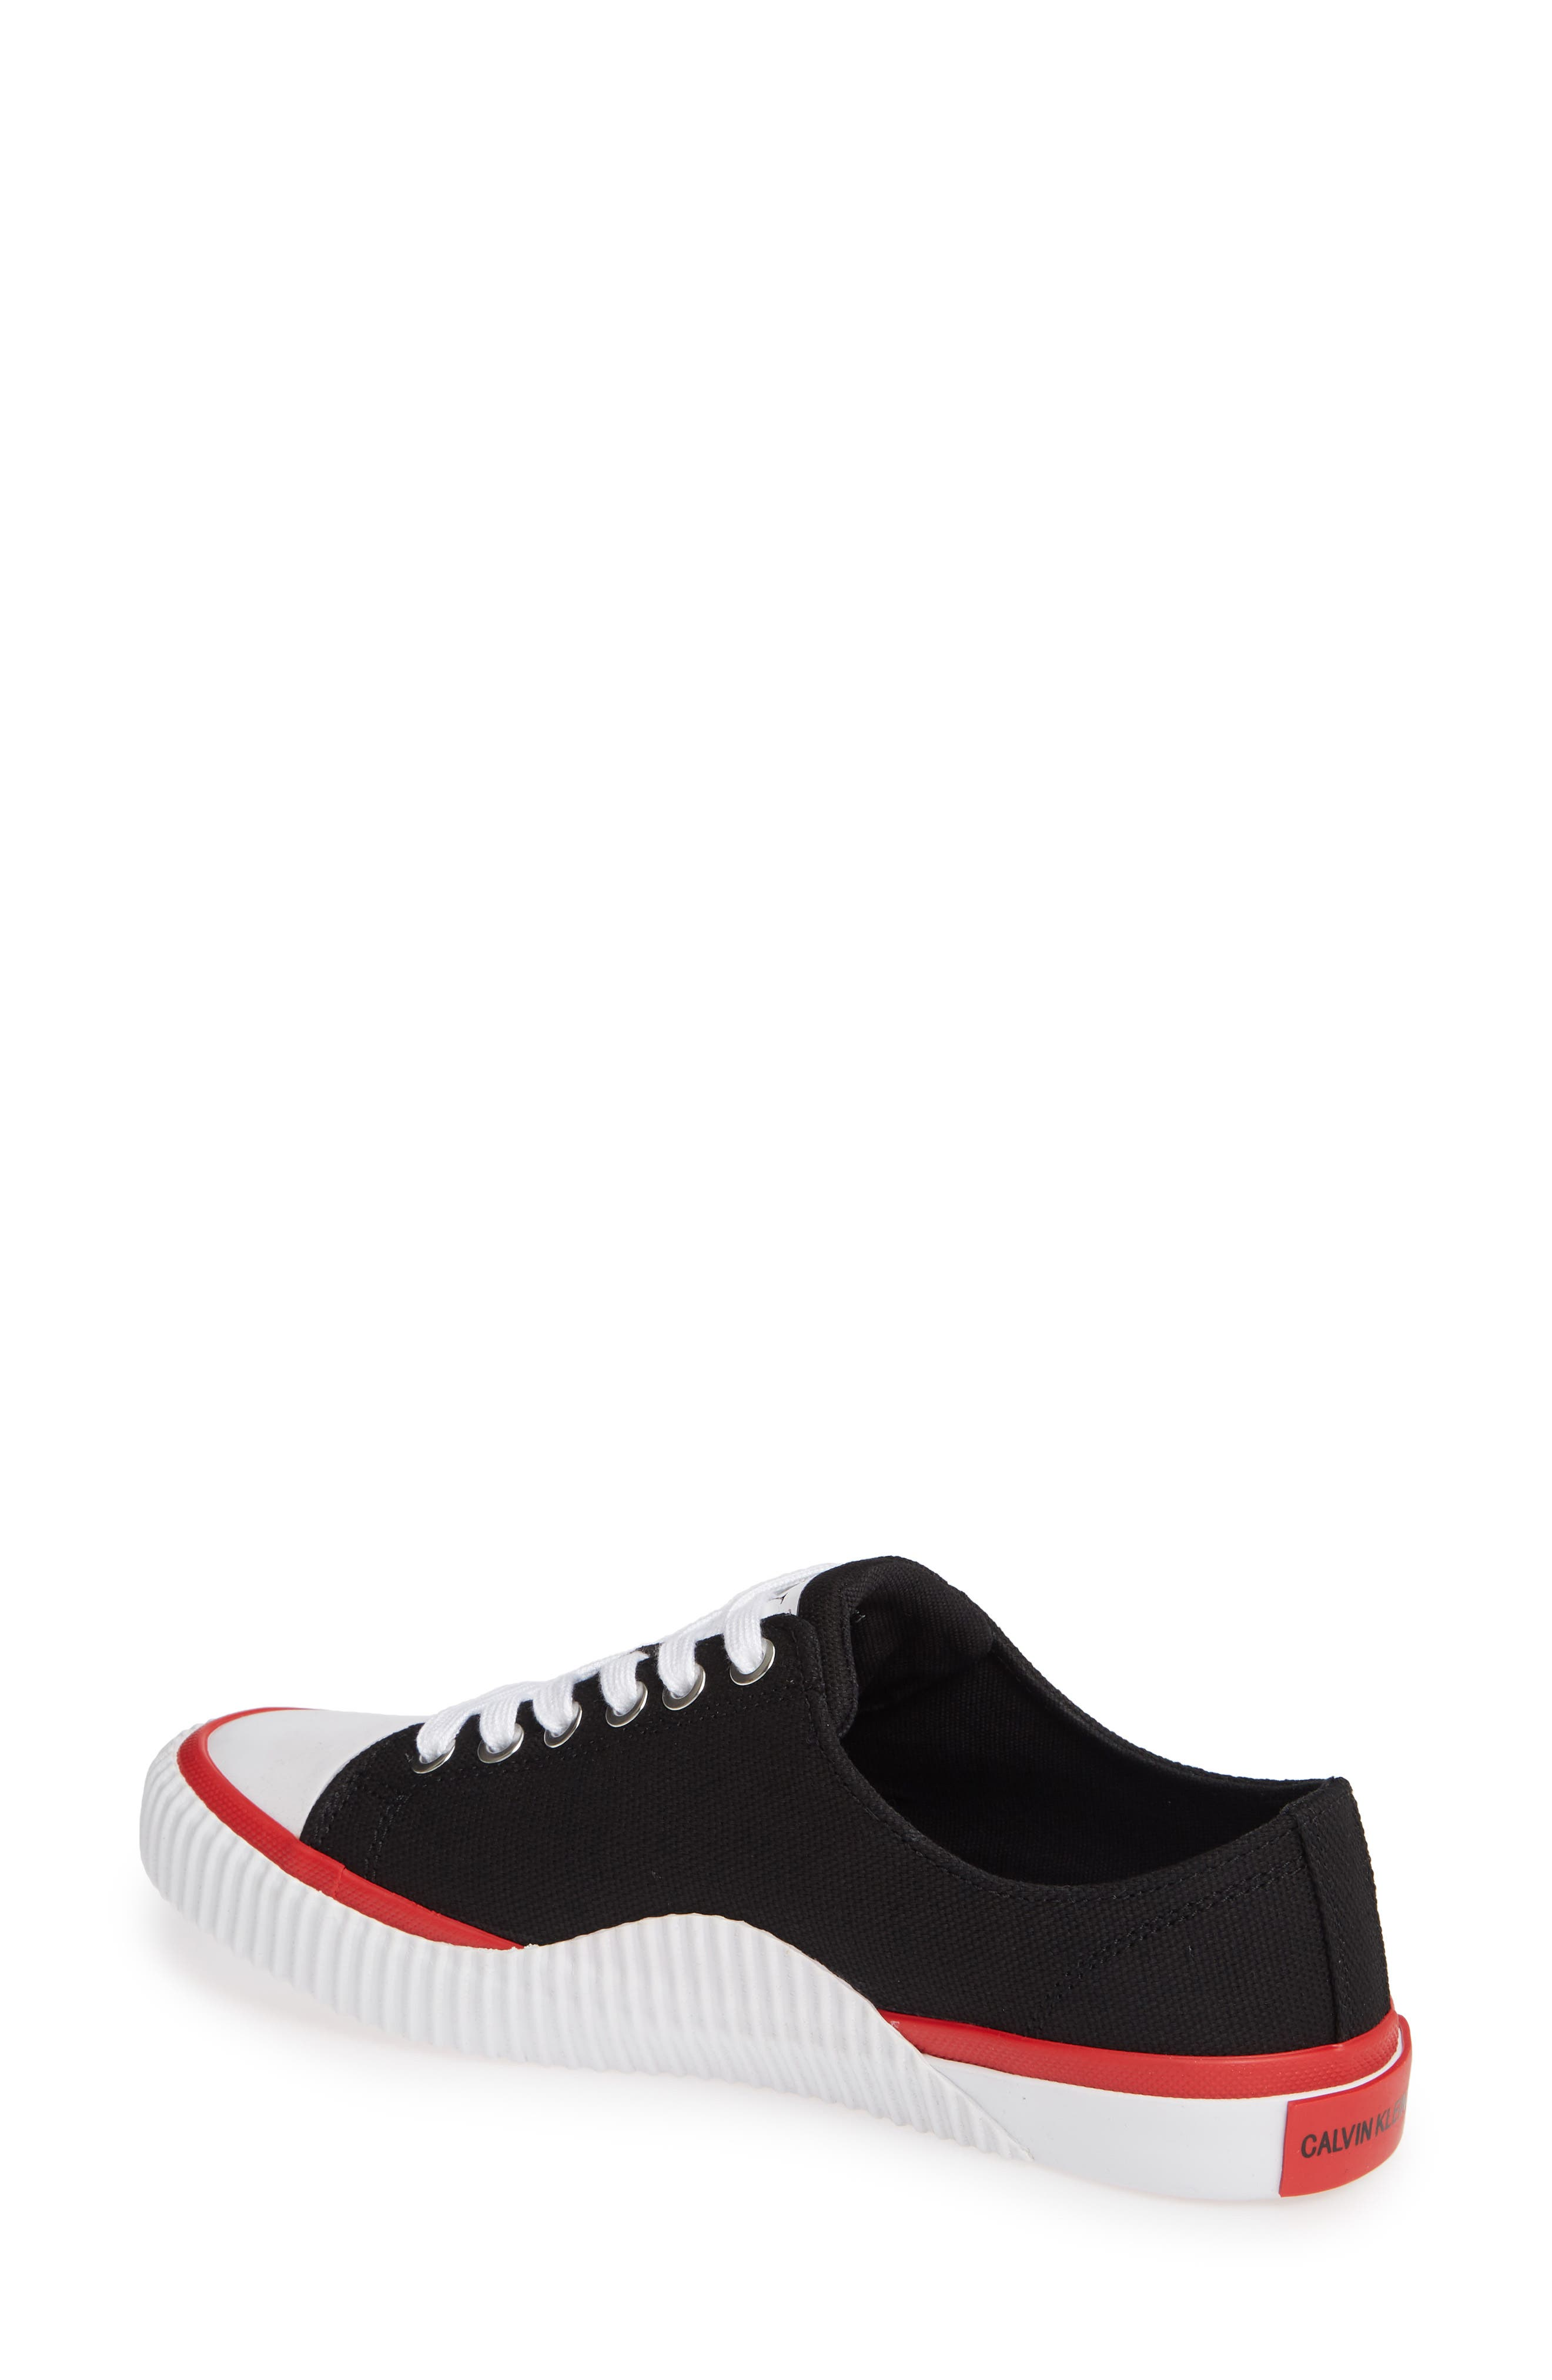 Ivory Lace-Up Sneaker,                             Alternate thumbnail 2, color,                             001